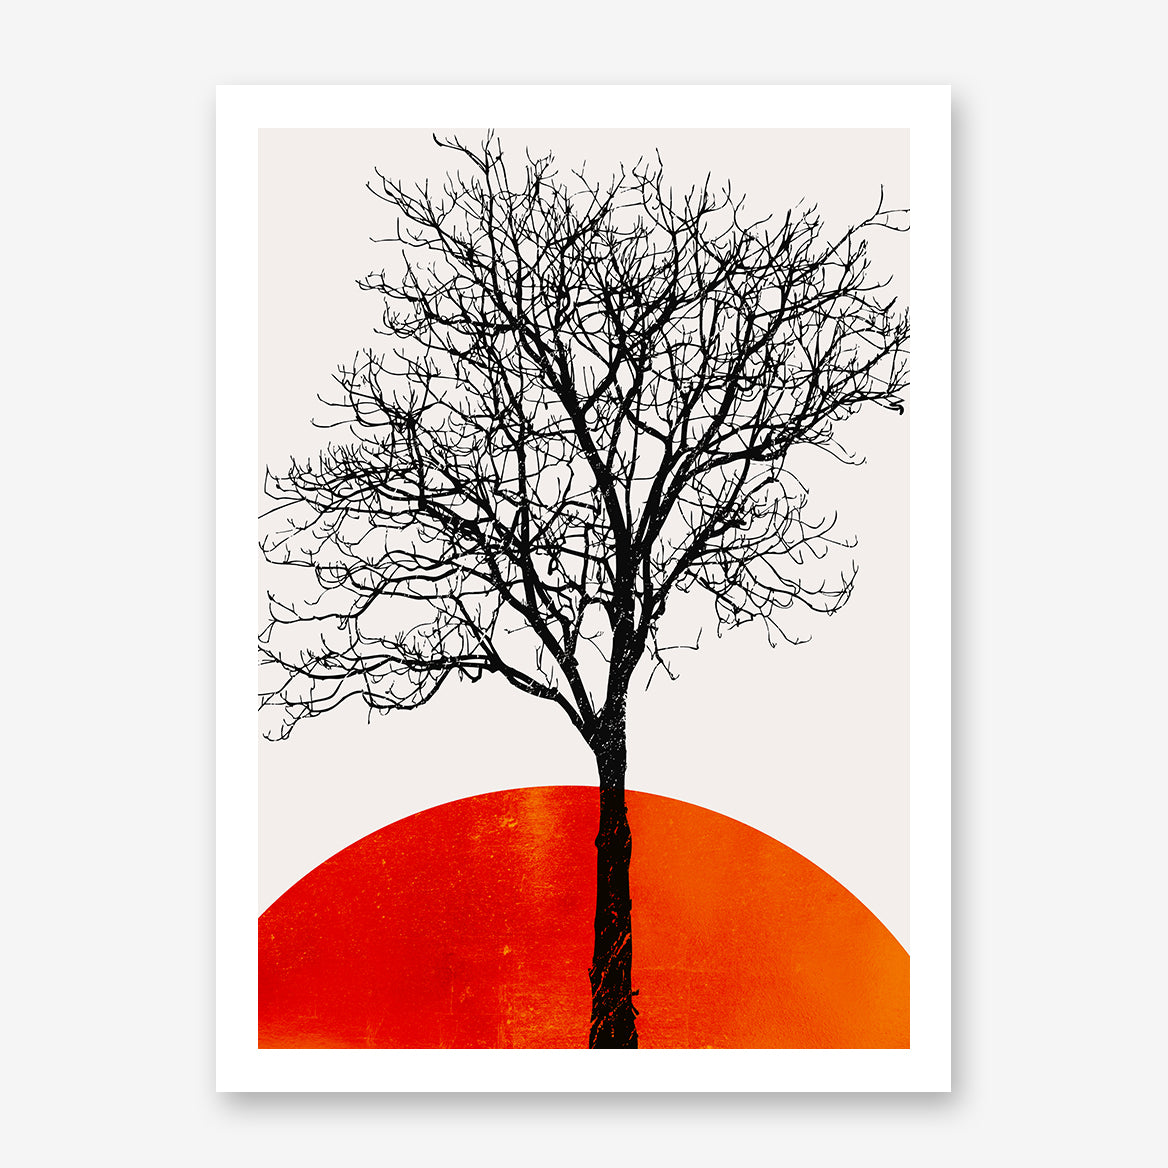 Illustration print by Kubistika, with black tree and dark orange sunrise, on light grey background.